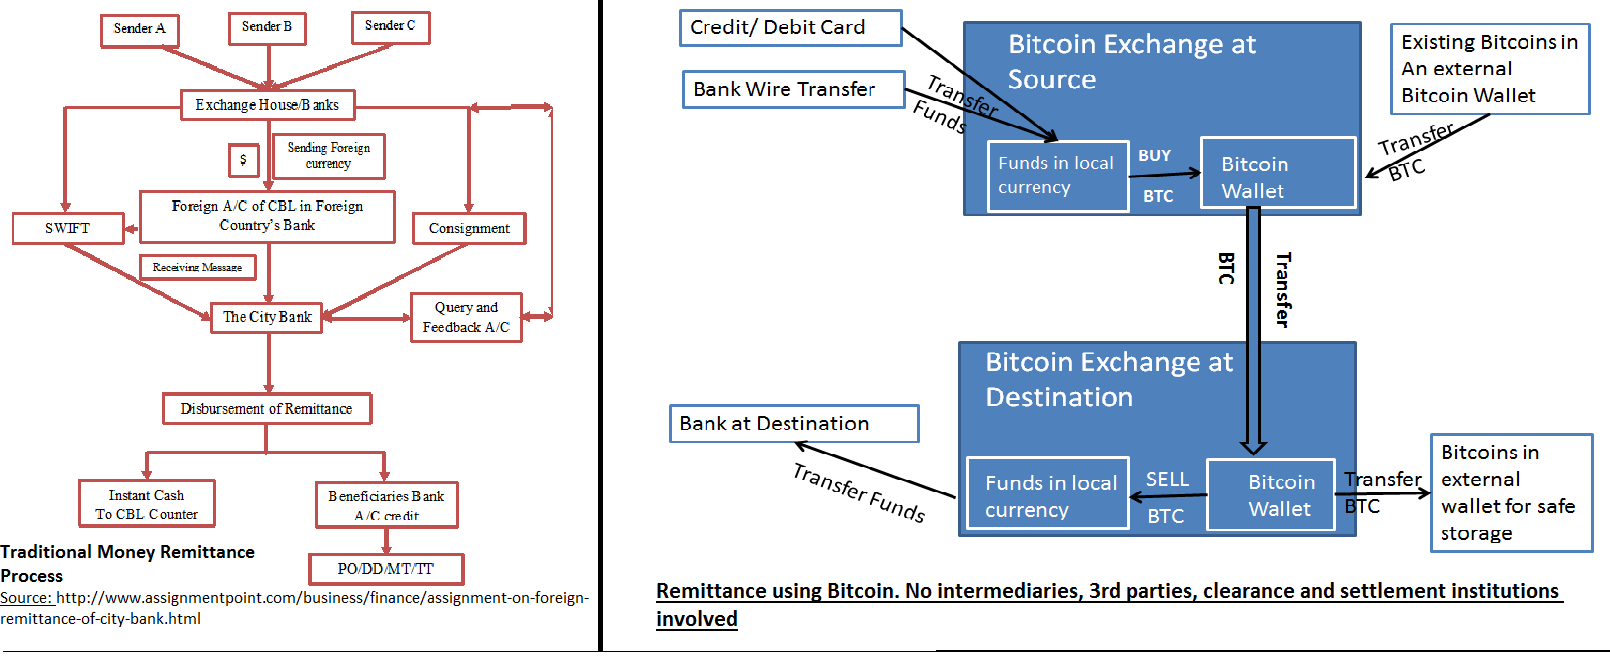 How to remit using Bitcoins and save time and even earn money